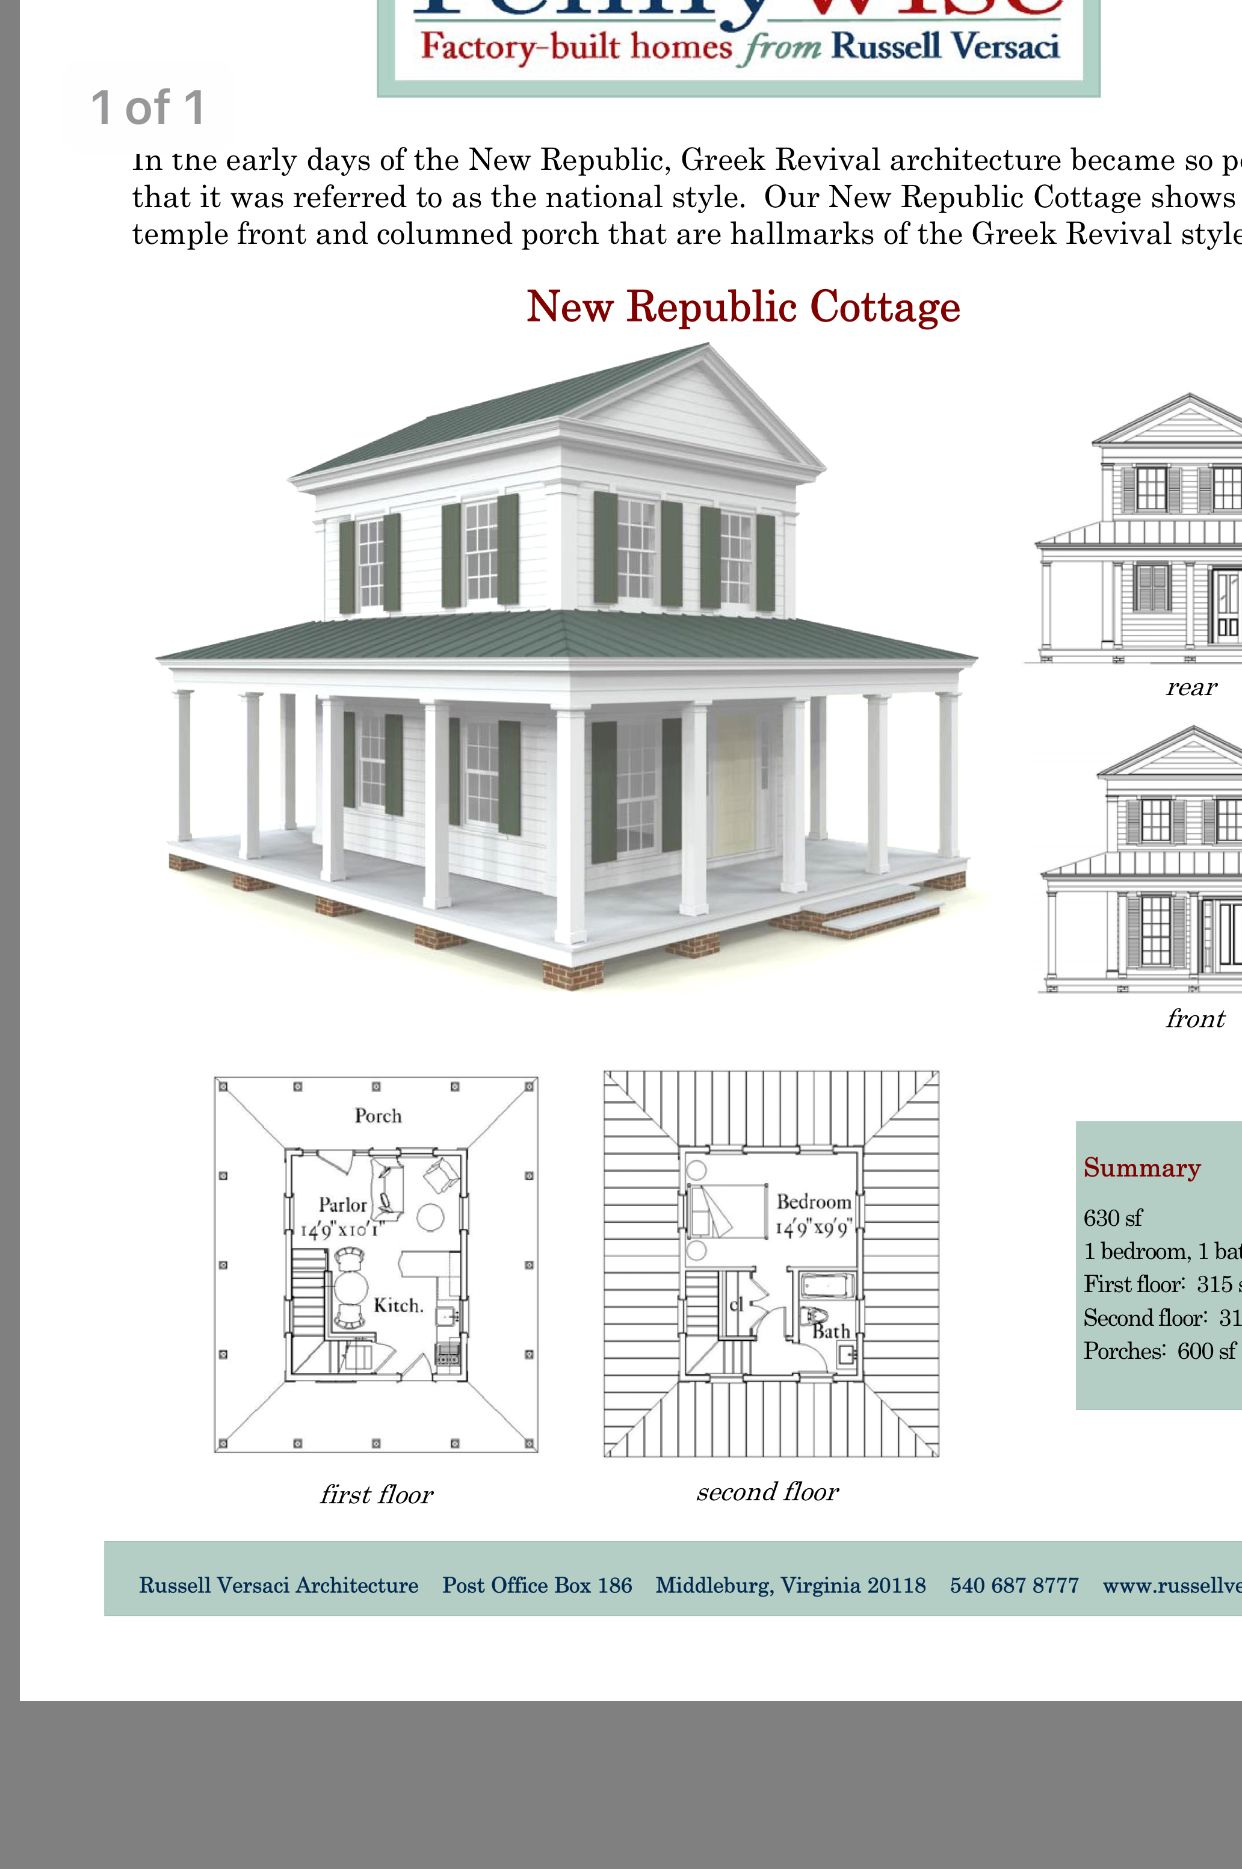 Pin by Cherie King on House plans in 2019 | Greek revival ... Narrow Lot House Plans Greek Revival on jeffersonian house plans, italianate house plans, plantation house plans, ranch house plans, cape cod house plans, colonial house plans, split level house plans, victorian house plans, upstairs and downstairs bedroom house plans, european house plans, craftsman house plans, greek house drawings, adams style house plans, georgian home plans, french colonial home plans, southern house plans, traditional house plans, gothic revival home plans, contemporary house plans, neoclassical home plans,